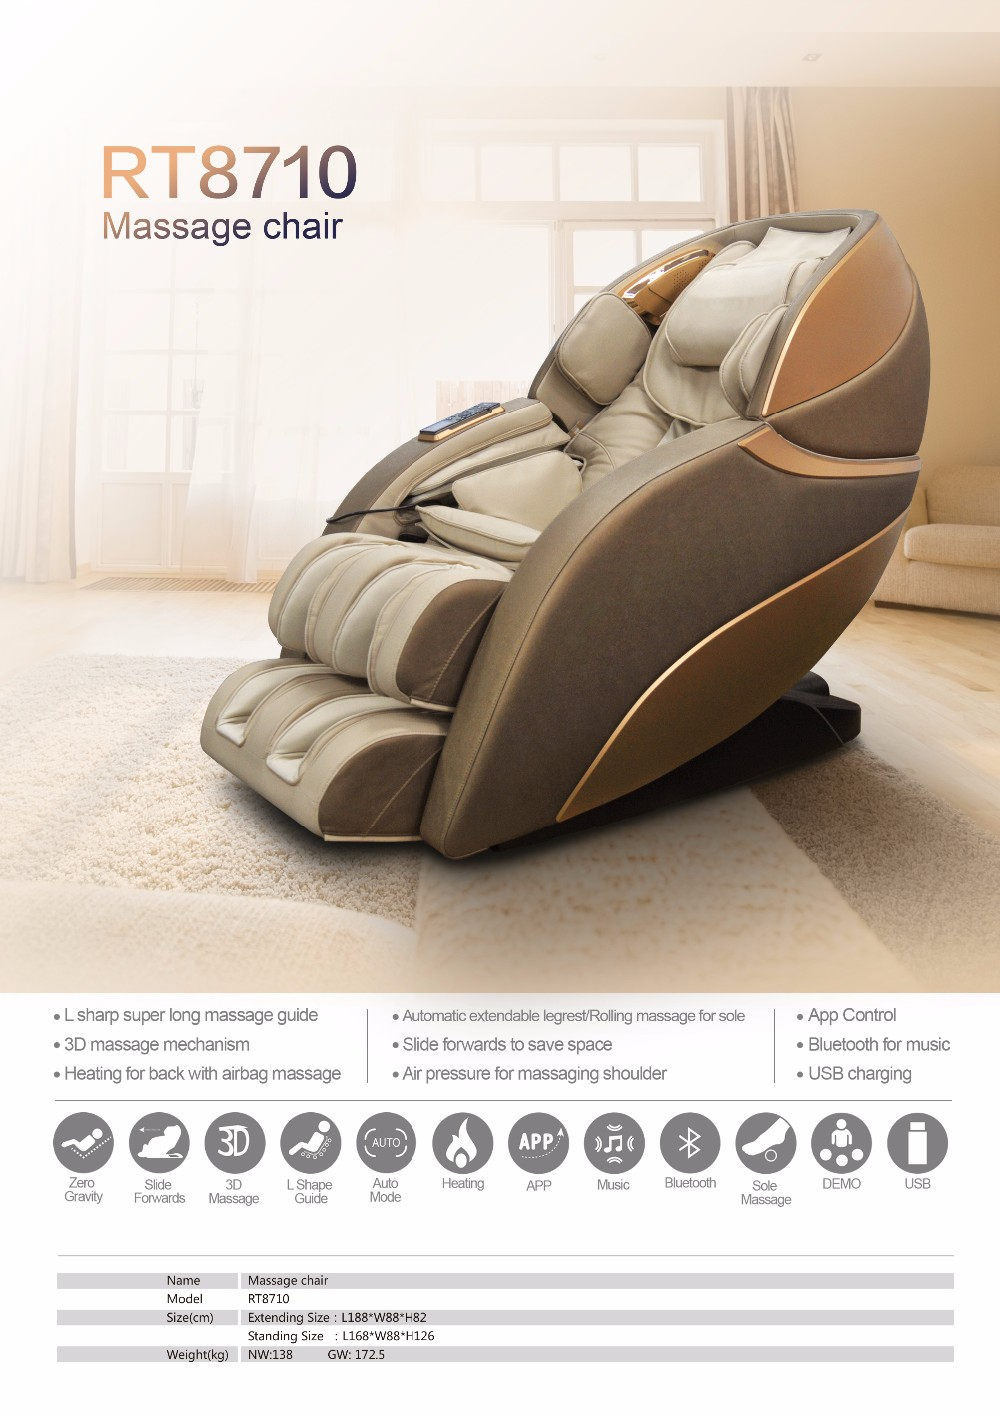 Rongtai RT8710 Massage Chair 3d Zero Gravity/innovative Massage Chair/music Massage  Chair